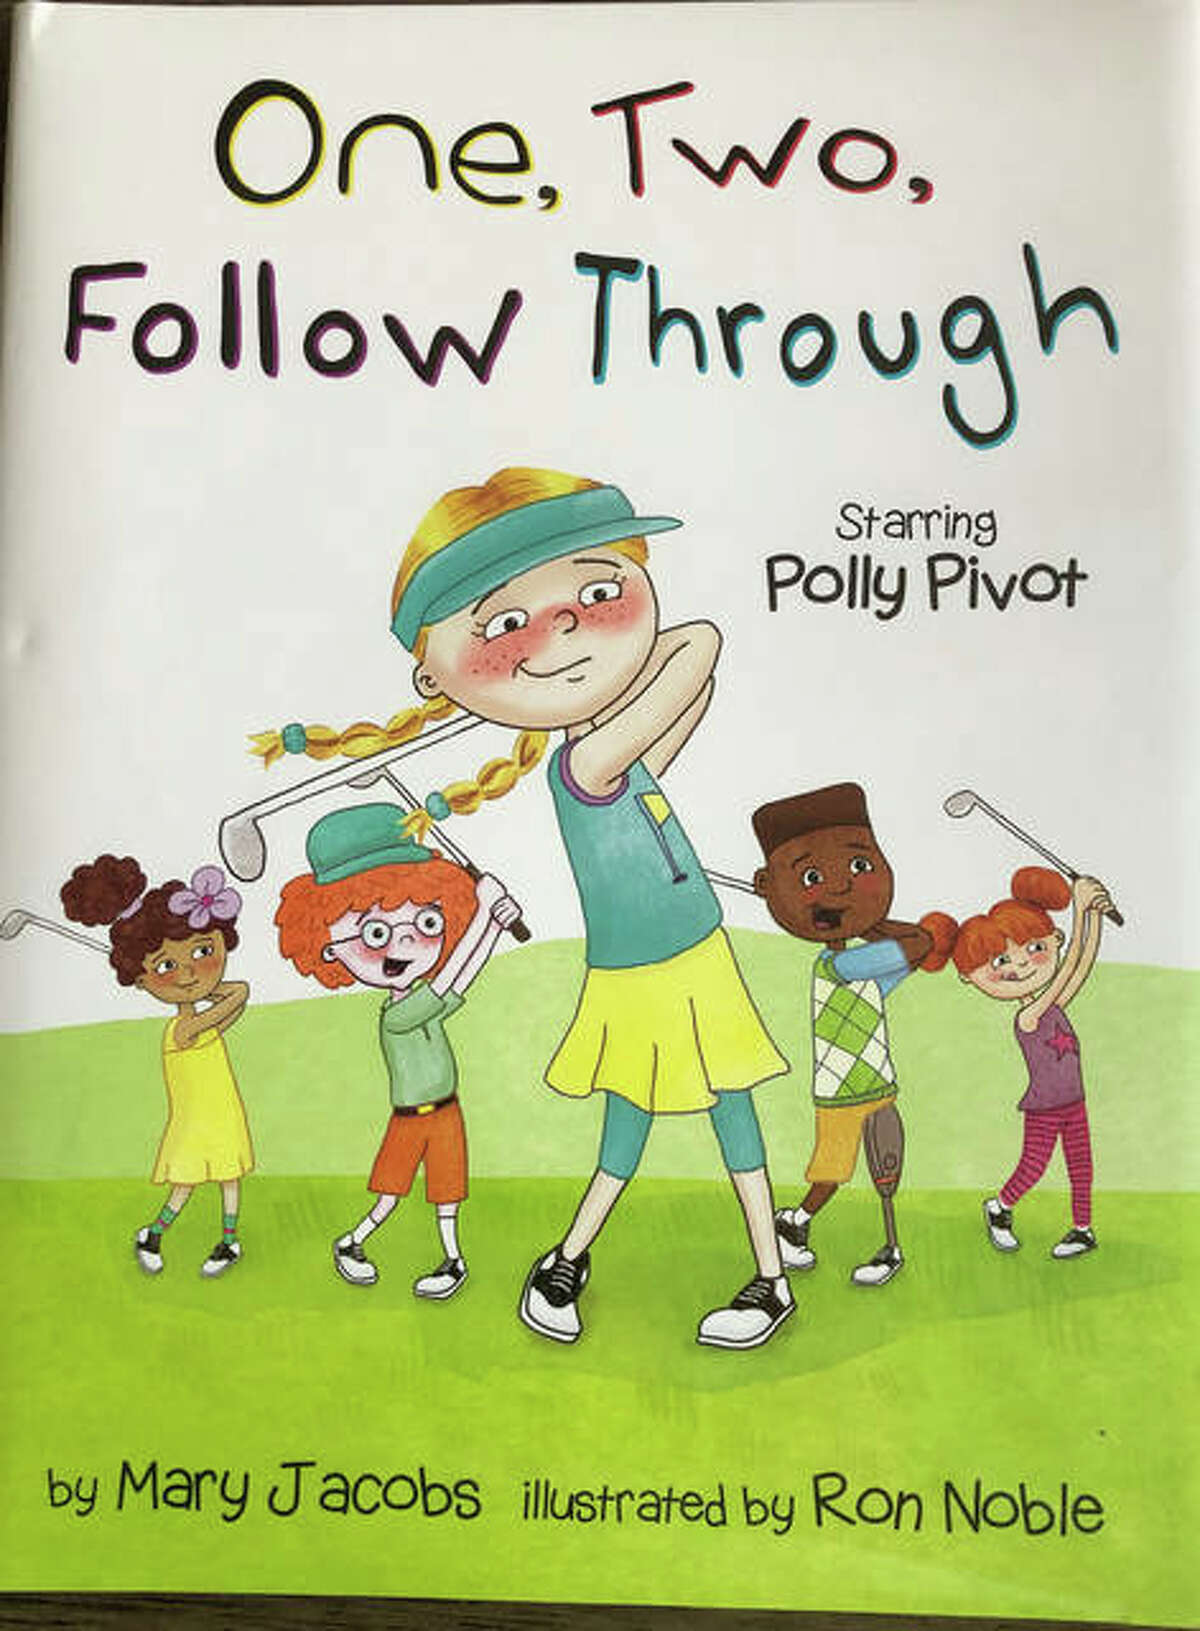 Mary Jacobs' new children's golf book 'One, Two, Follow Through' was released on June 8.